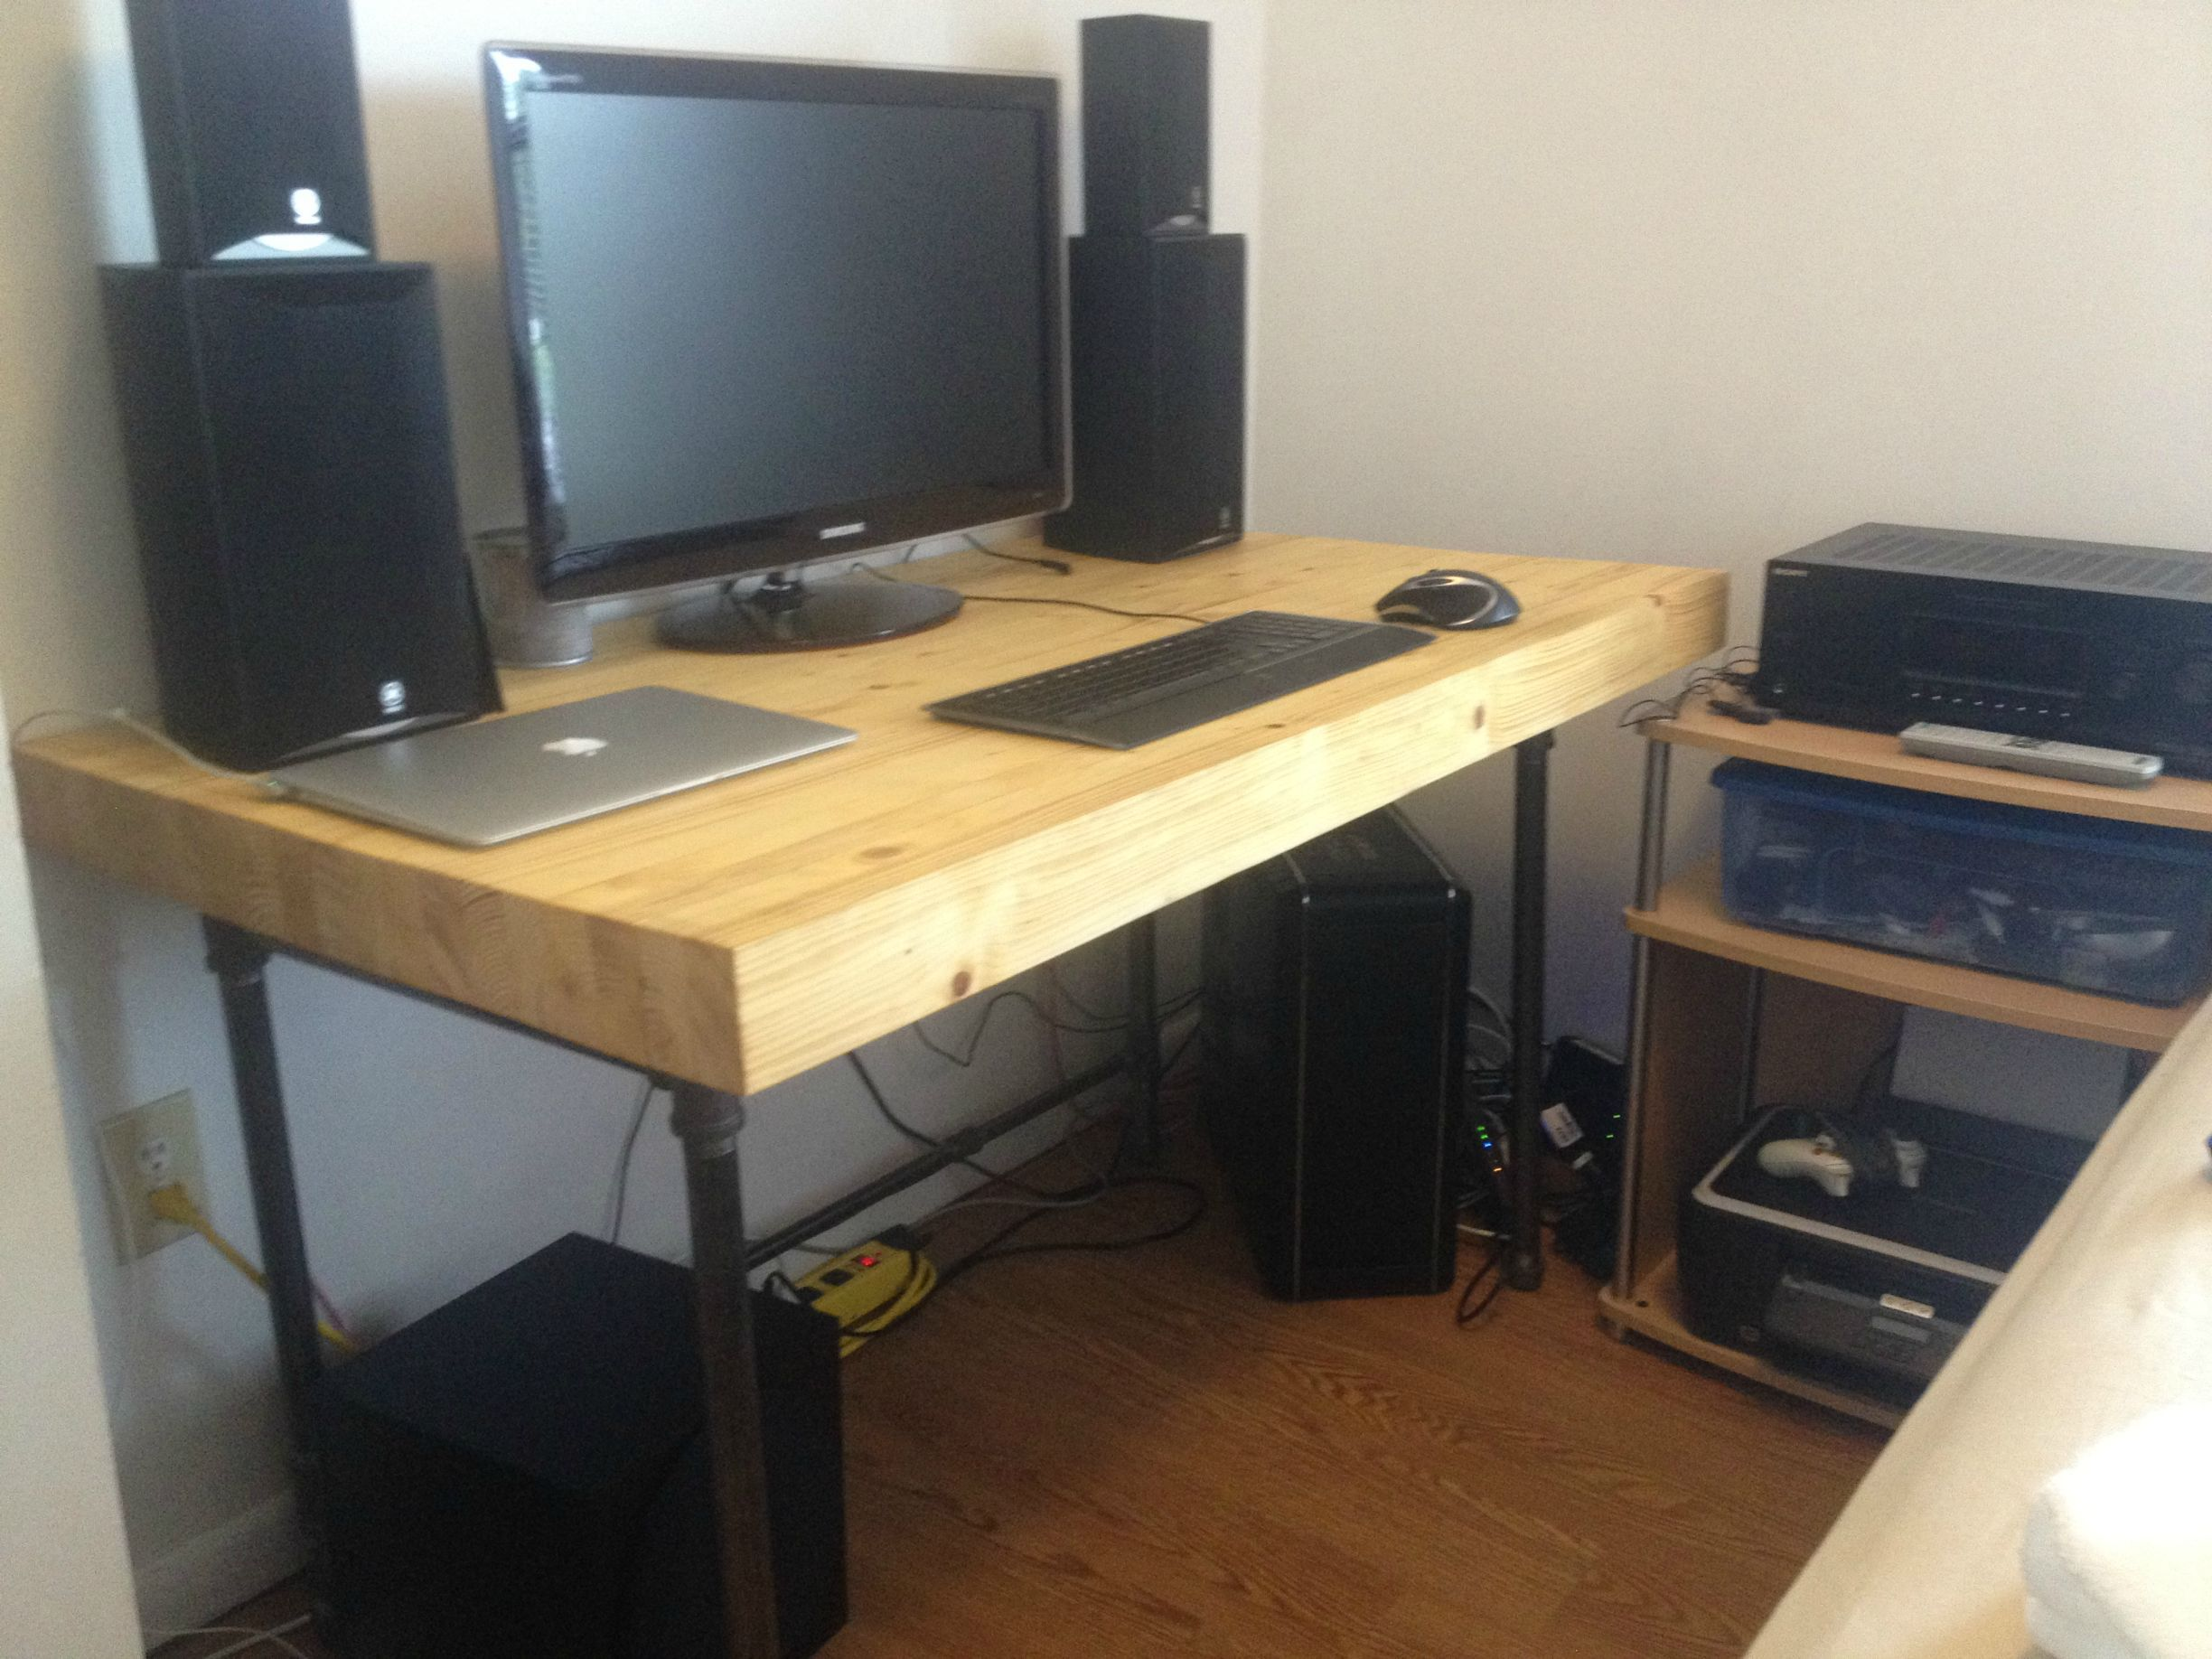 Furniture saving small spaces with custom diy butcher block computer desk top with black iron - Corner computer desks for small spaces ideas ...